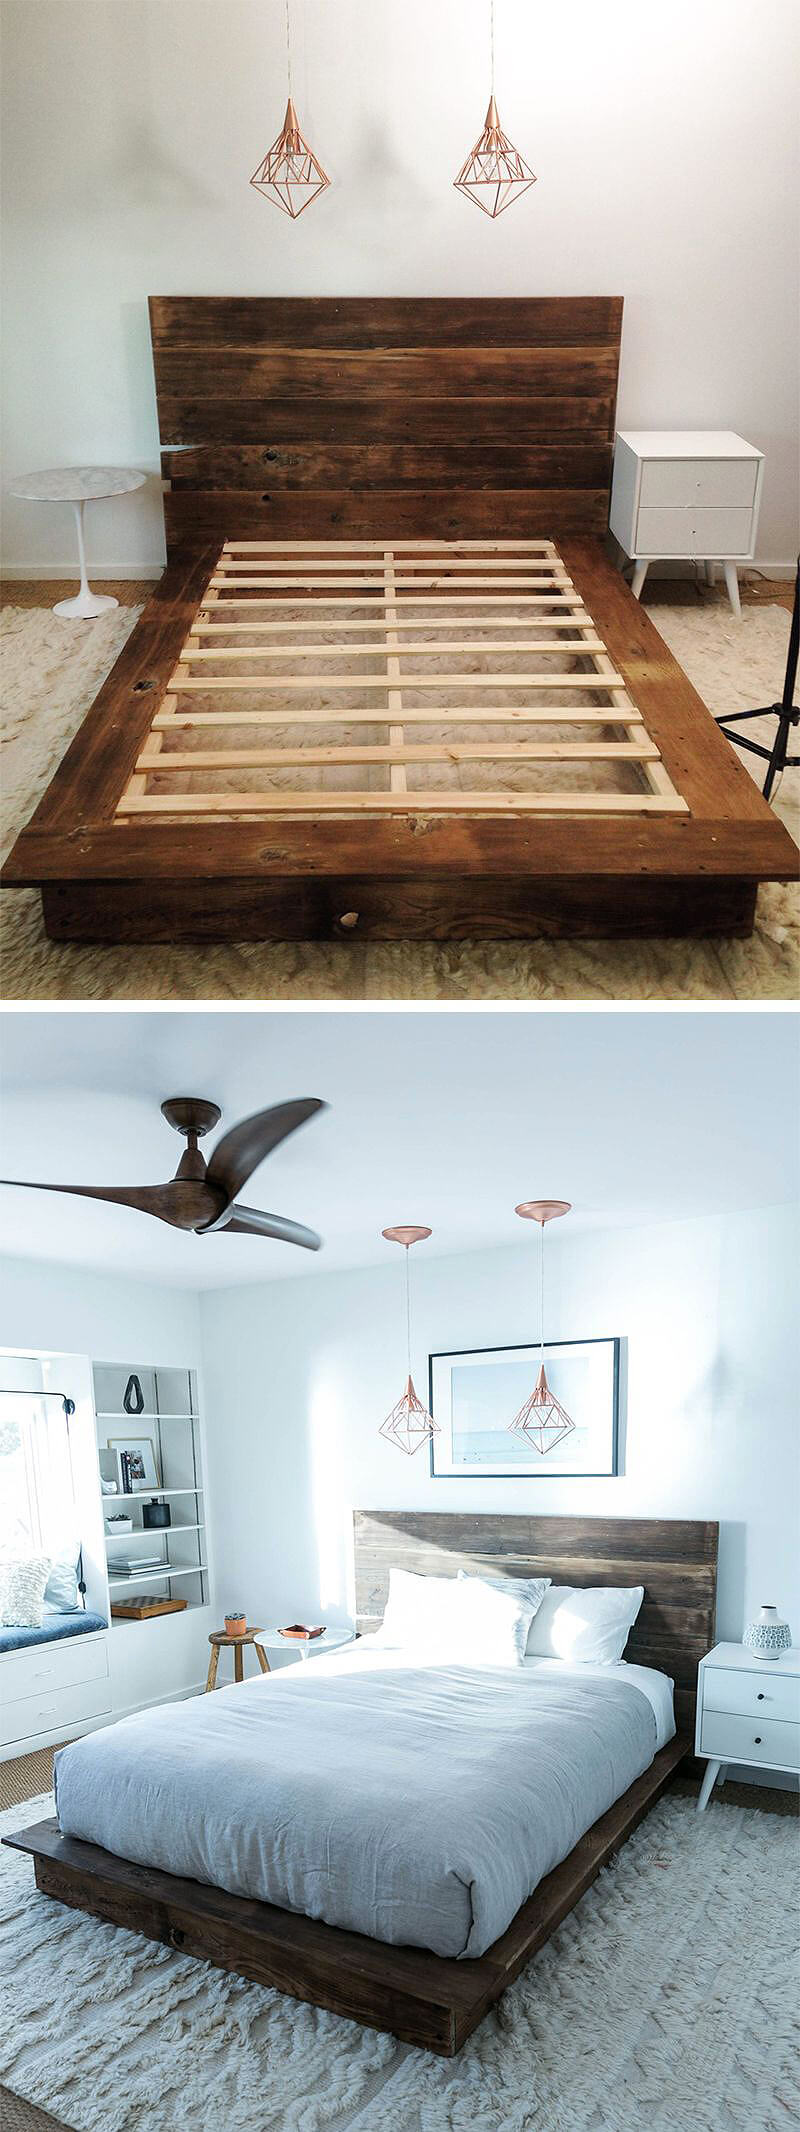 34 DIY Reclaimed Wood Projects (Ideas and Designs) for 2019